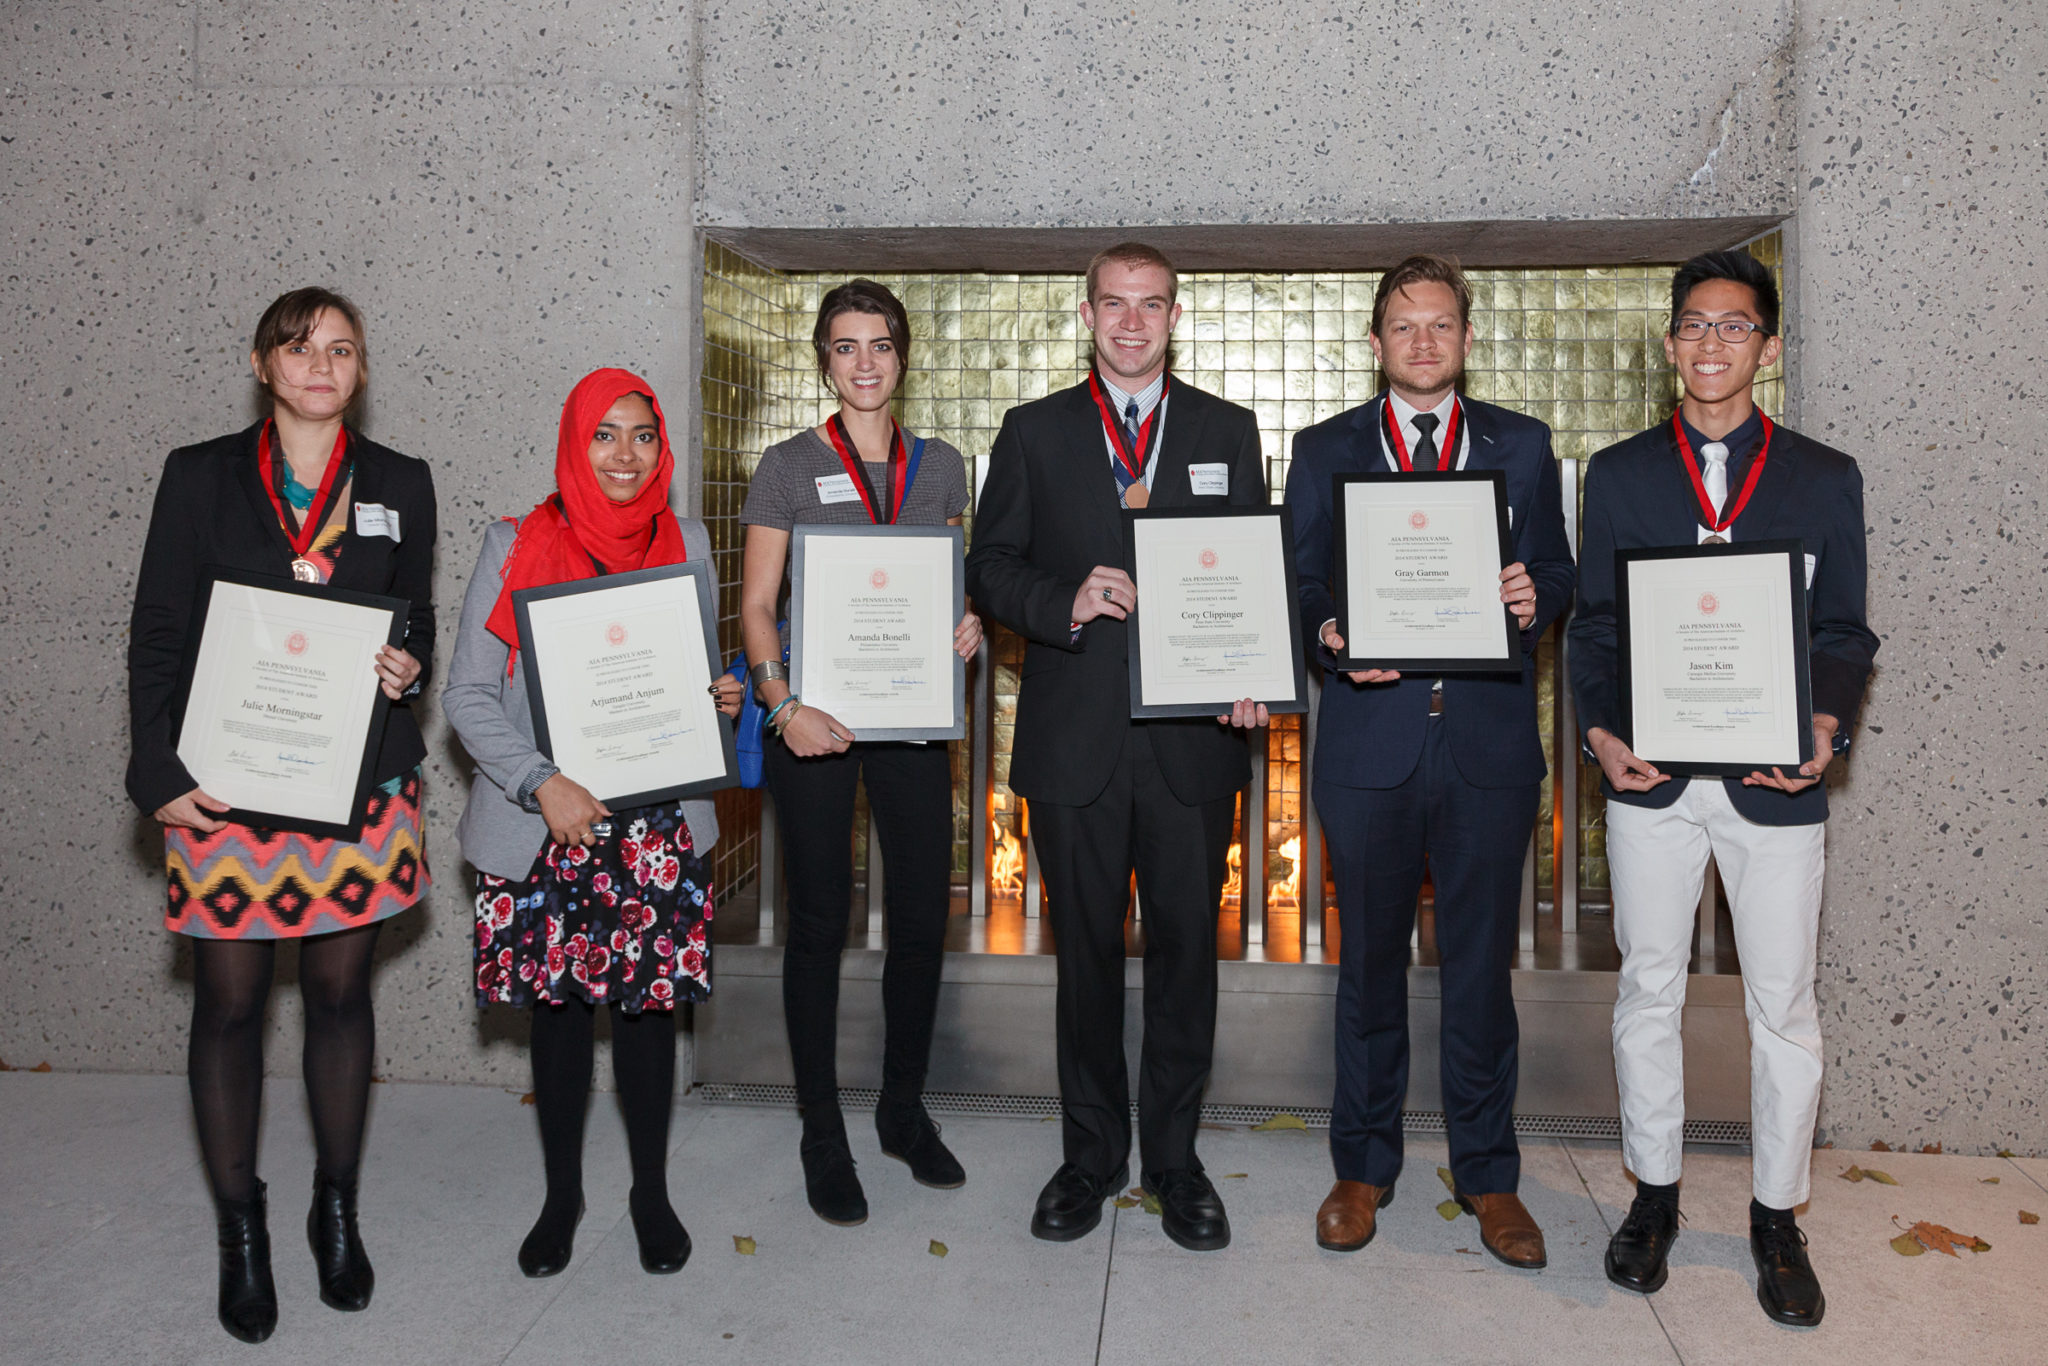 2014 AIA ​Student Award Winners​ (​L to R​)​: Julie Morningstar, Drexel University​, ​Arjumand Anjum, Temple University​, ​Amanda Bonelli, Philadelphia University​, ​Cory Clippinger, Penn State University​, ​Gray Garmon, University of Pennsylvania​, ​Jason Kim, Carnegie Mellon University​